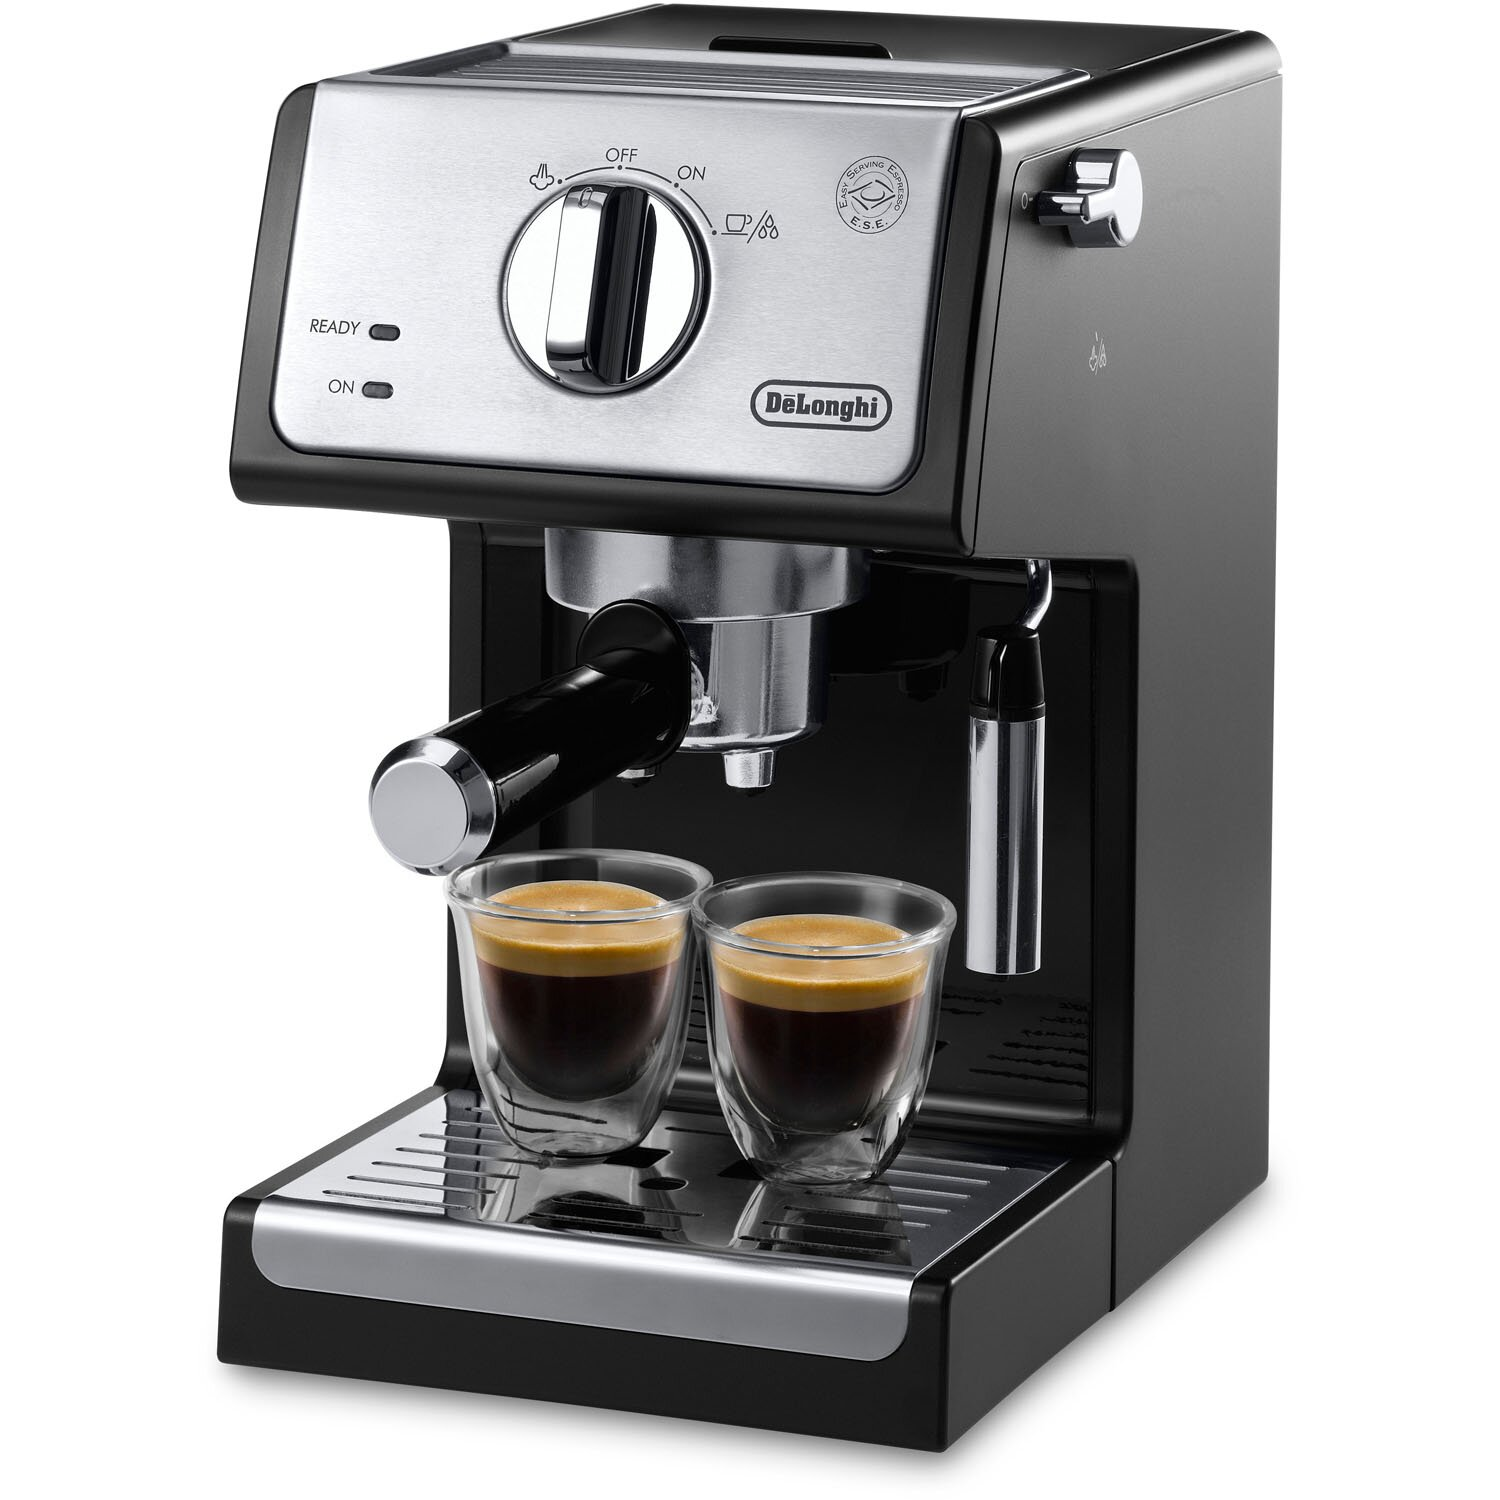 Delonghi Coffee Maker ~ Delonghi bar pump coffee espresso maker reviews wayfair